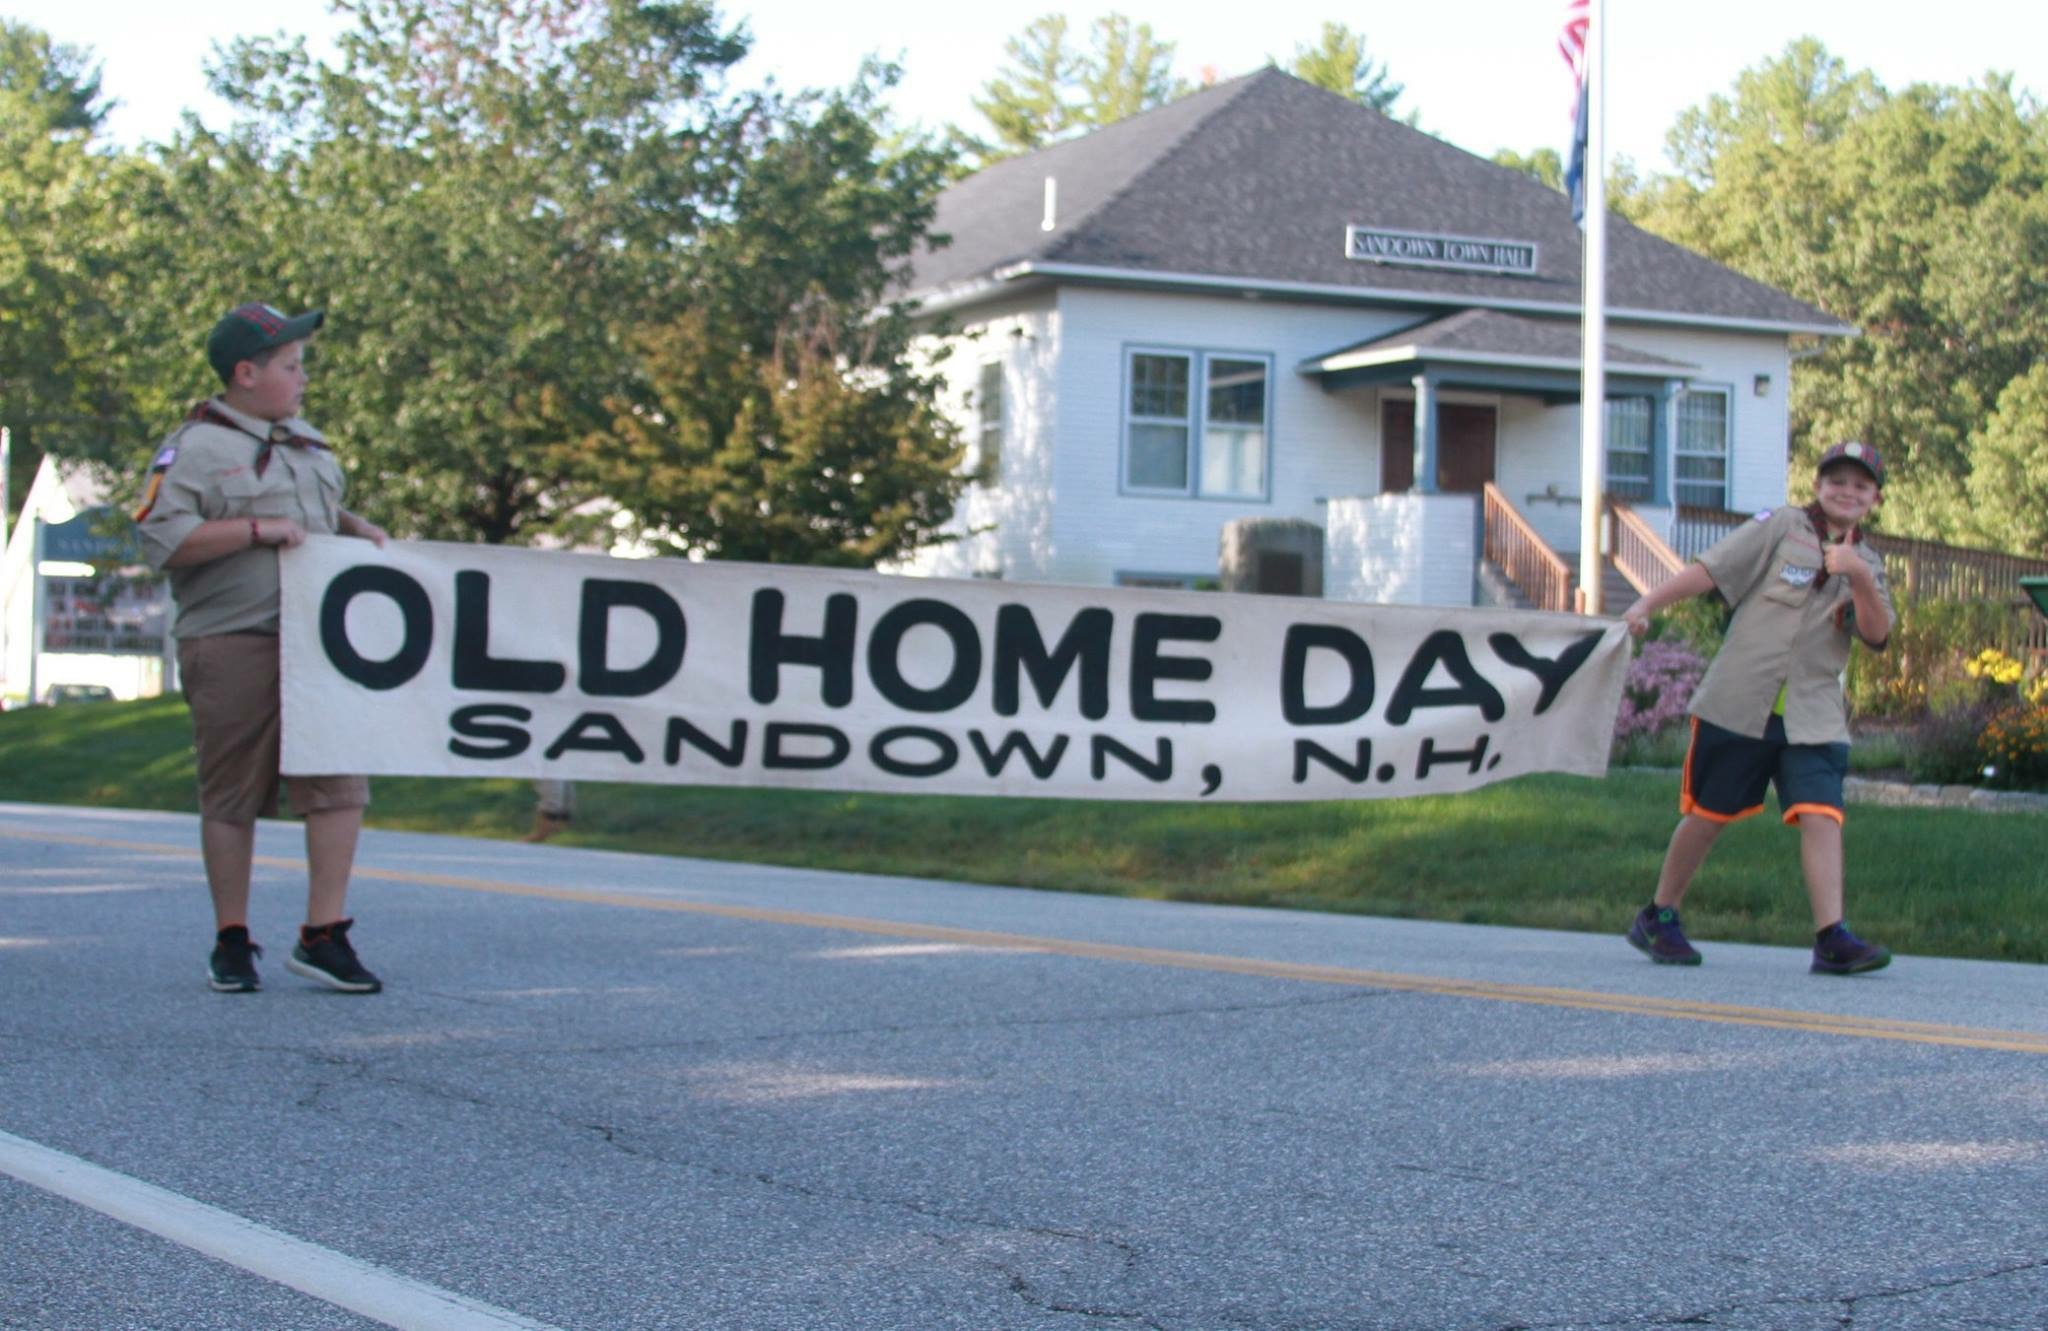 Old Home Days in New Hampshire for 2019    Amherst -  September 7   Belmont  - August 10  Bridgewater - August 17   Canaan  - August 2-4   Candia  – August 24   Enfield  - July 26-28   Epsom  - August 9-10   Franconia  - July 6   Freedom  - August 2-11   Gilford  - August 24   Harrisville  - July 5-7   Hollis  - September 13-14   Hooksett  – September 21   Hudson  - August 8-11   Londonderry  – August 14-18   Loudon  – August 10   Madison  - August 3-11   New Hampton  - August 10   Newbury  - July 13   Pembroke & Allenstown  - August 24   Pittsburg  - August 17   Rumney  - August 10     Salisbury  – August 9-11   Sanbornton  - July 20   Sandown  – (No Old Home Day Fall Festival for 2019)   Sandwich  - August 4-11   Springfield  - July 13   Stoddard  – July 5-7   Swanzey  – July 20   Tuftonboro  – August 23-25   Warren  – July 12-14